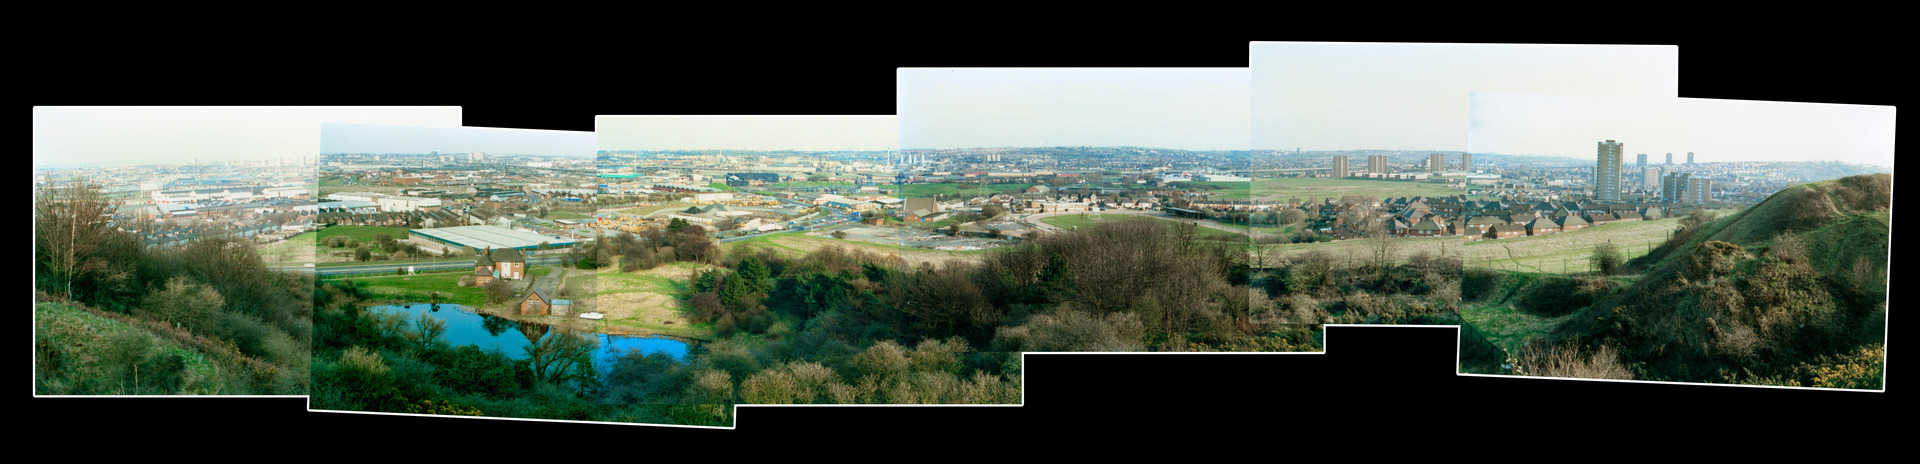 Panarama of Oldbury taken from the Rowley Hills in the 1980s by Jim Rippin.